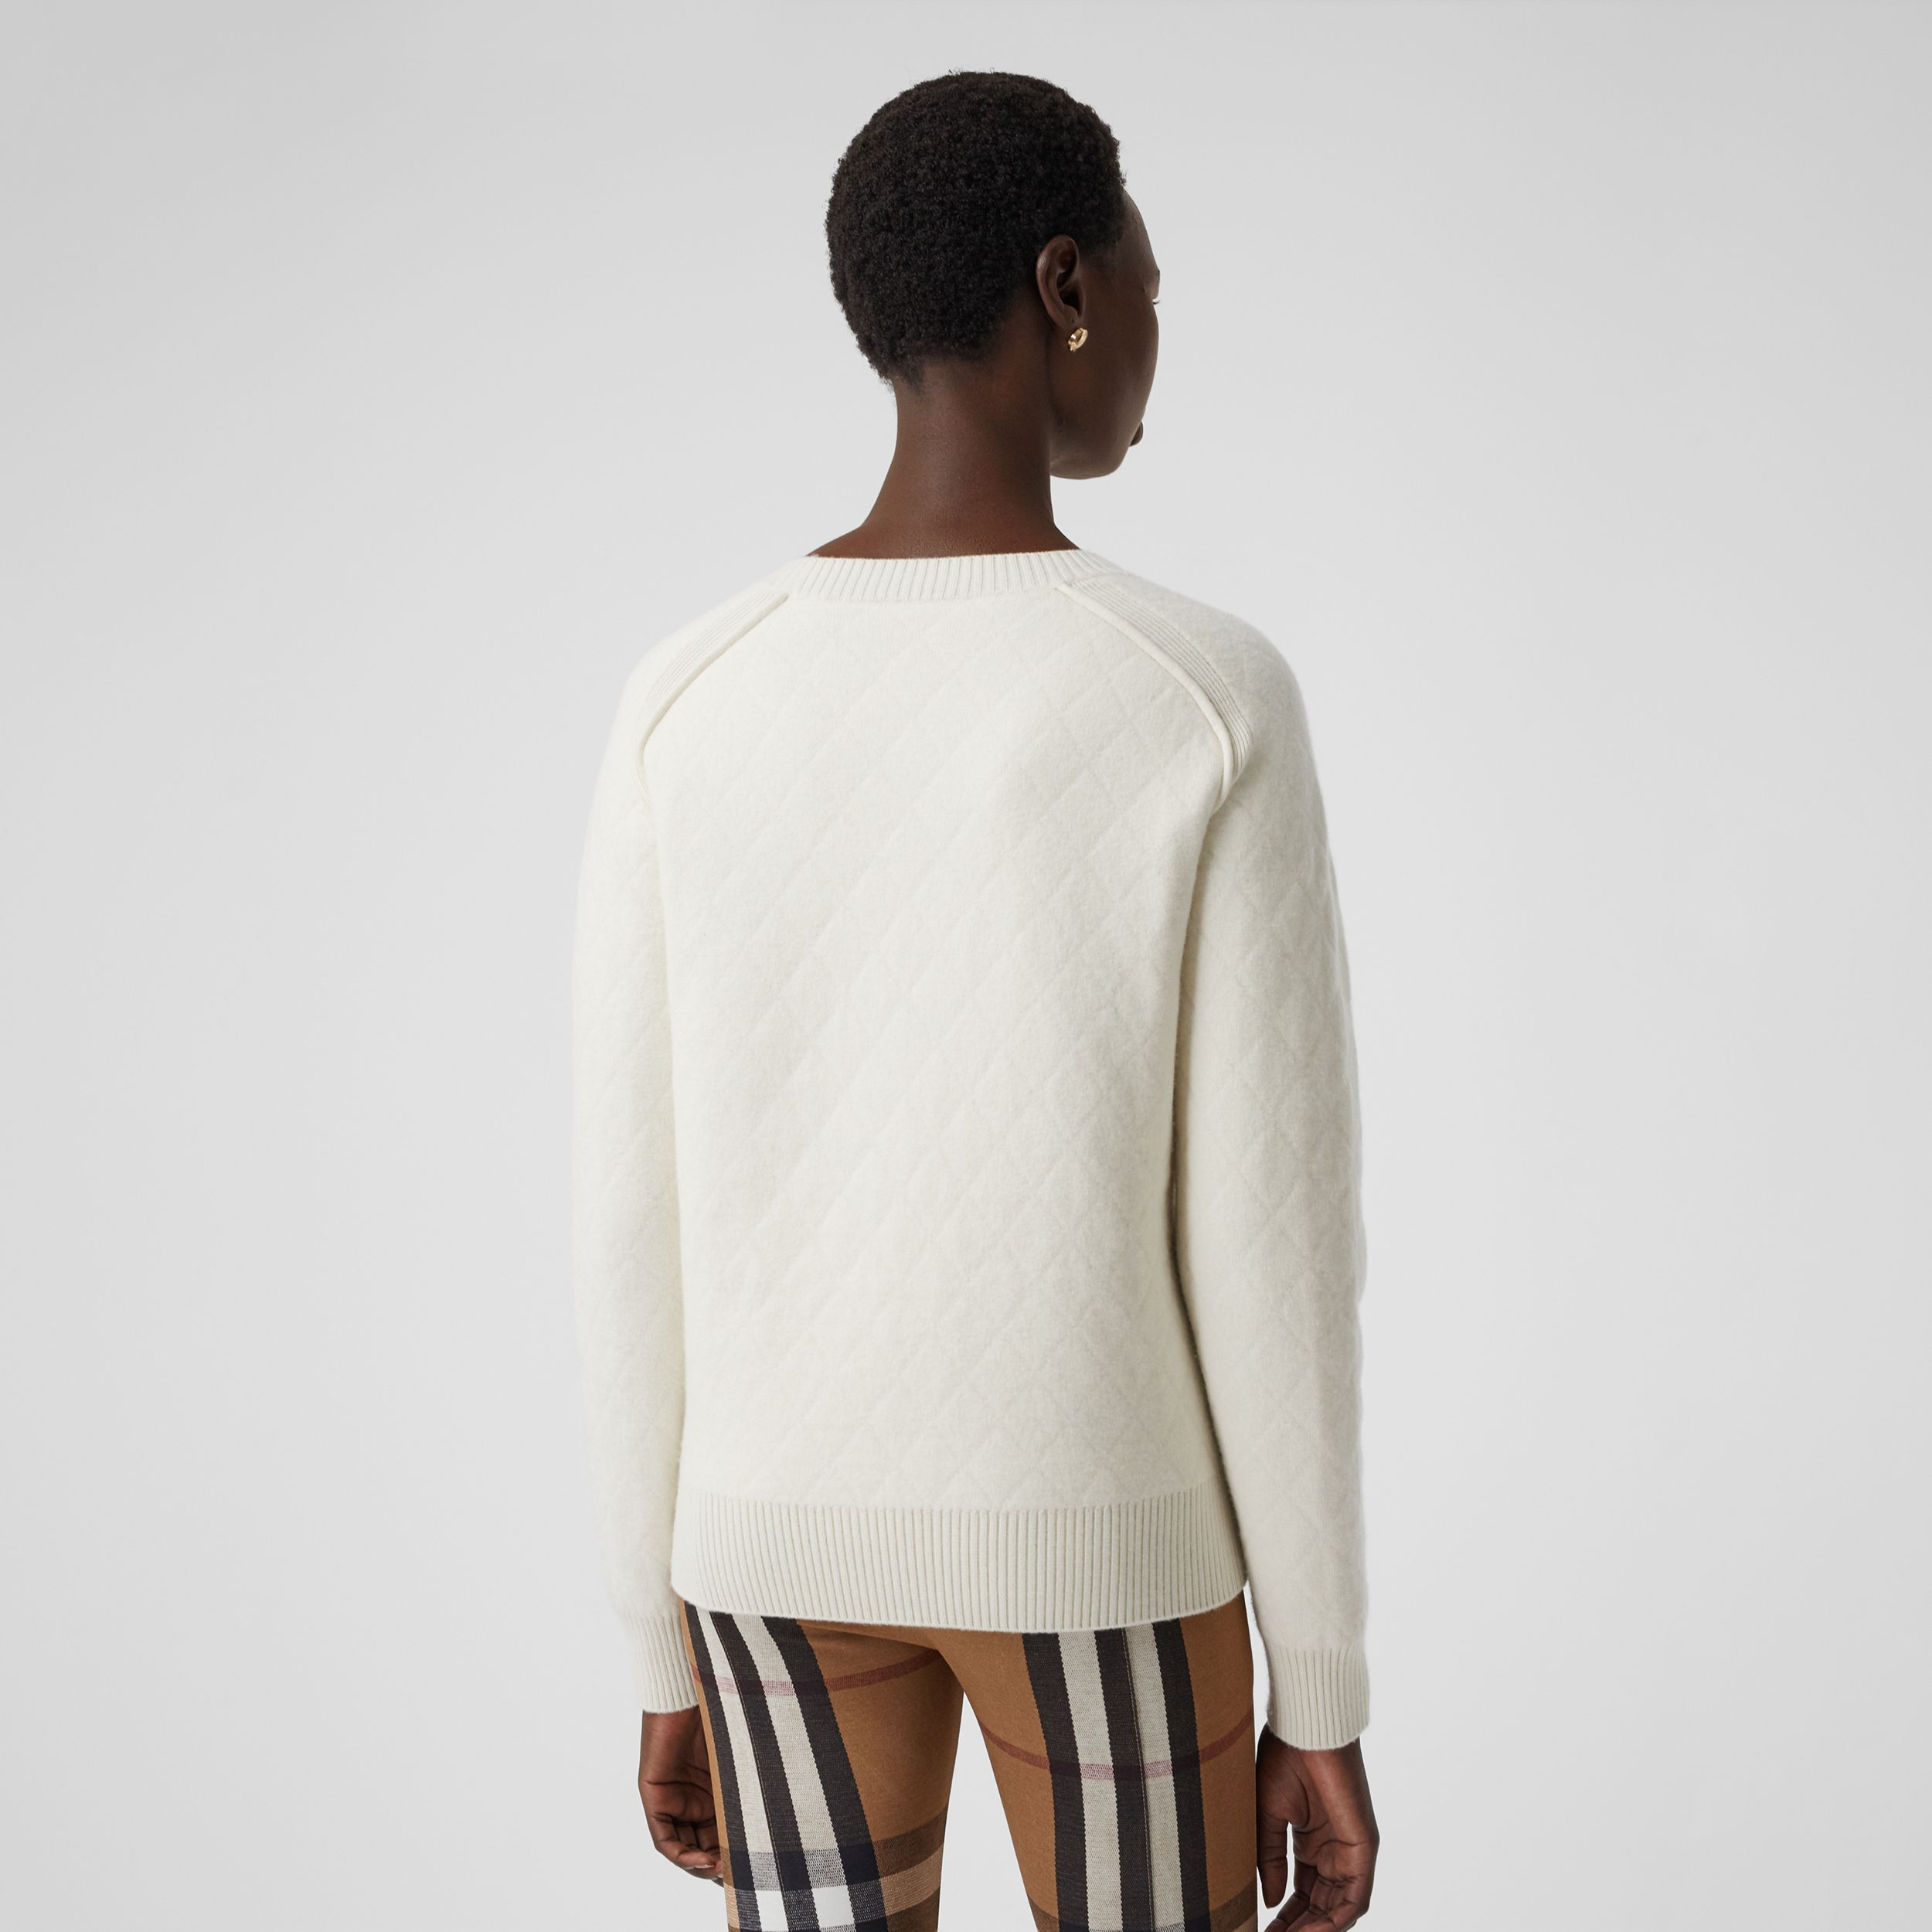 Diamond Knit Wool Sweater in Cream - Women | Burberry Hong Kong S.A.R. - 3